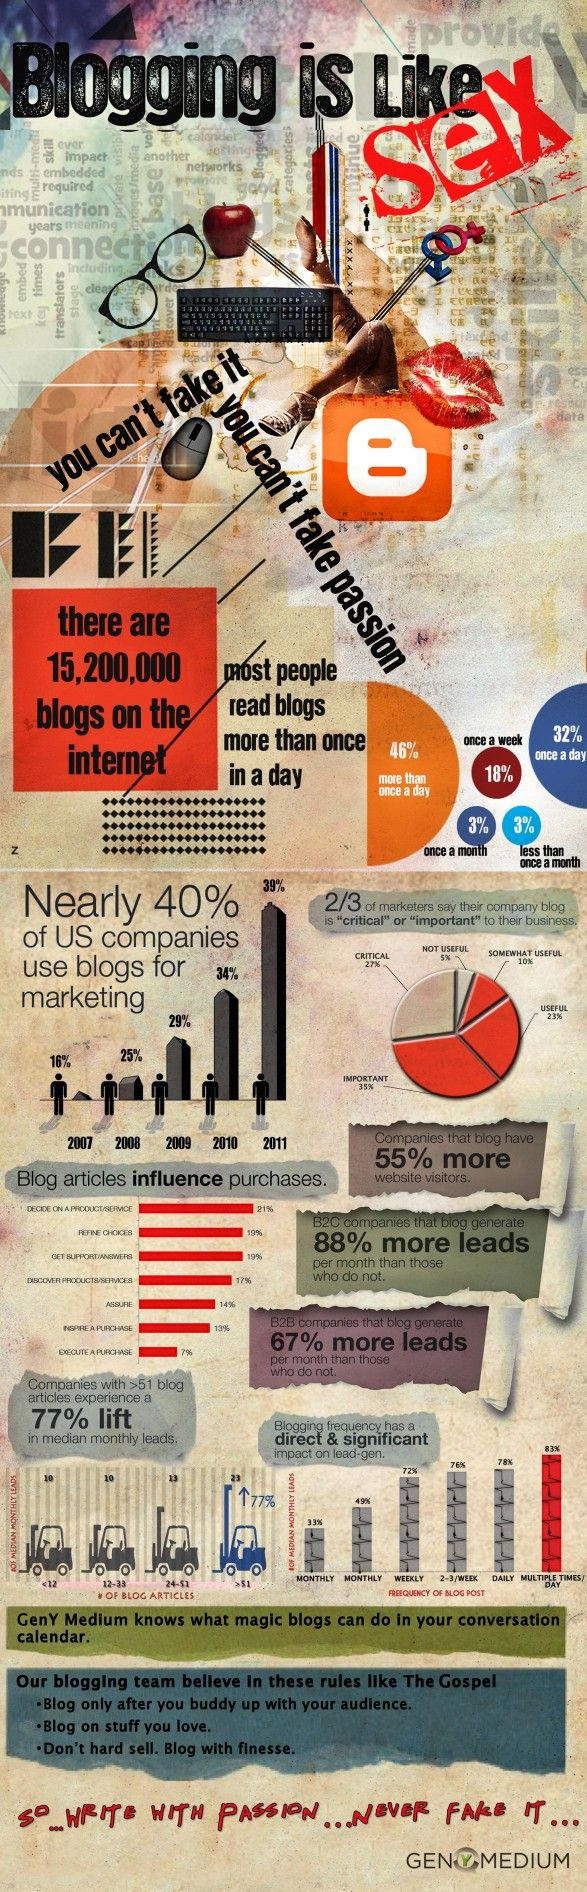 Blogging is like sex. Little painful at first. But you get used to it, and then you even start to enjoy it.    Most fascinating piece of information provided in the Infographic (made by GenYMedium) is the number of blogs on the Interwebs. Also, there's some great info on the frequency with which readers consume blog content, as well as traffic stats (which to companies = lead generation potential) for companies who blog vs. the ones that dont.